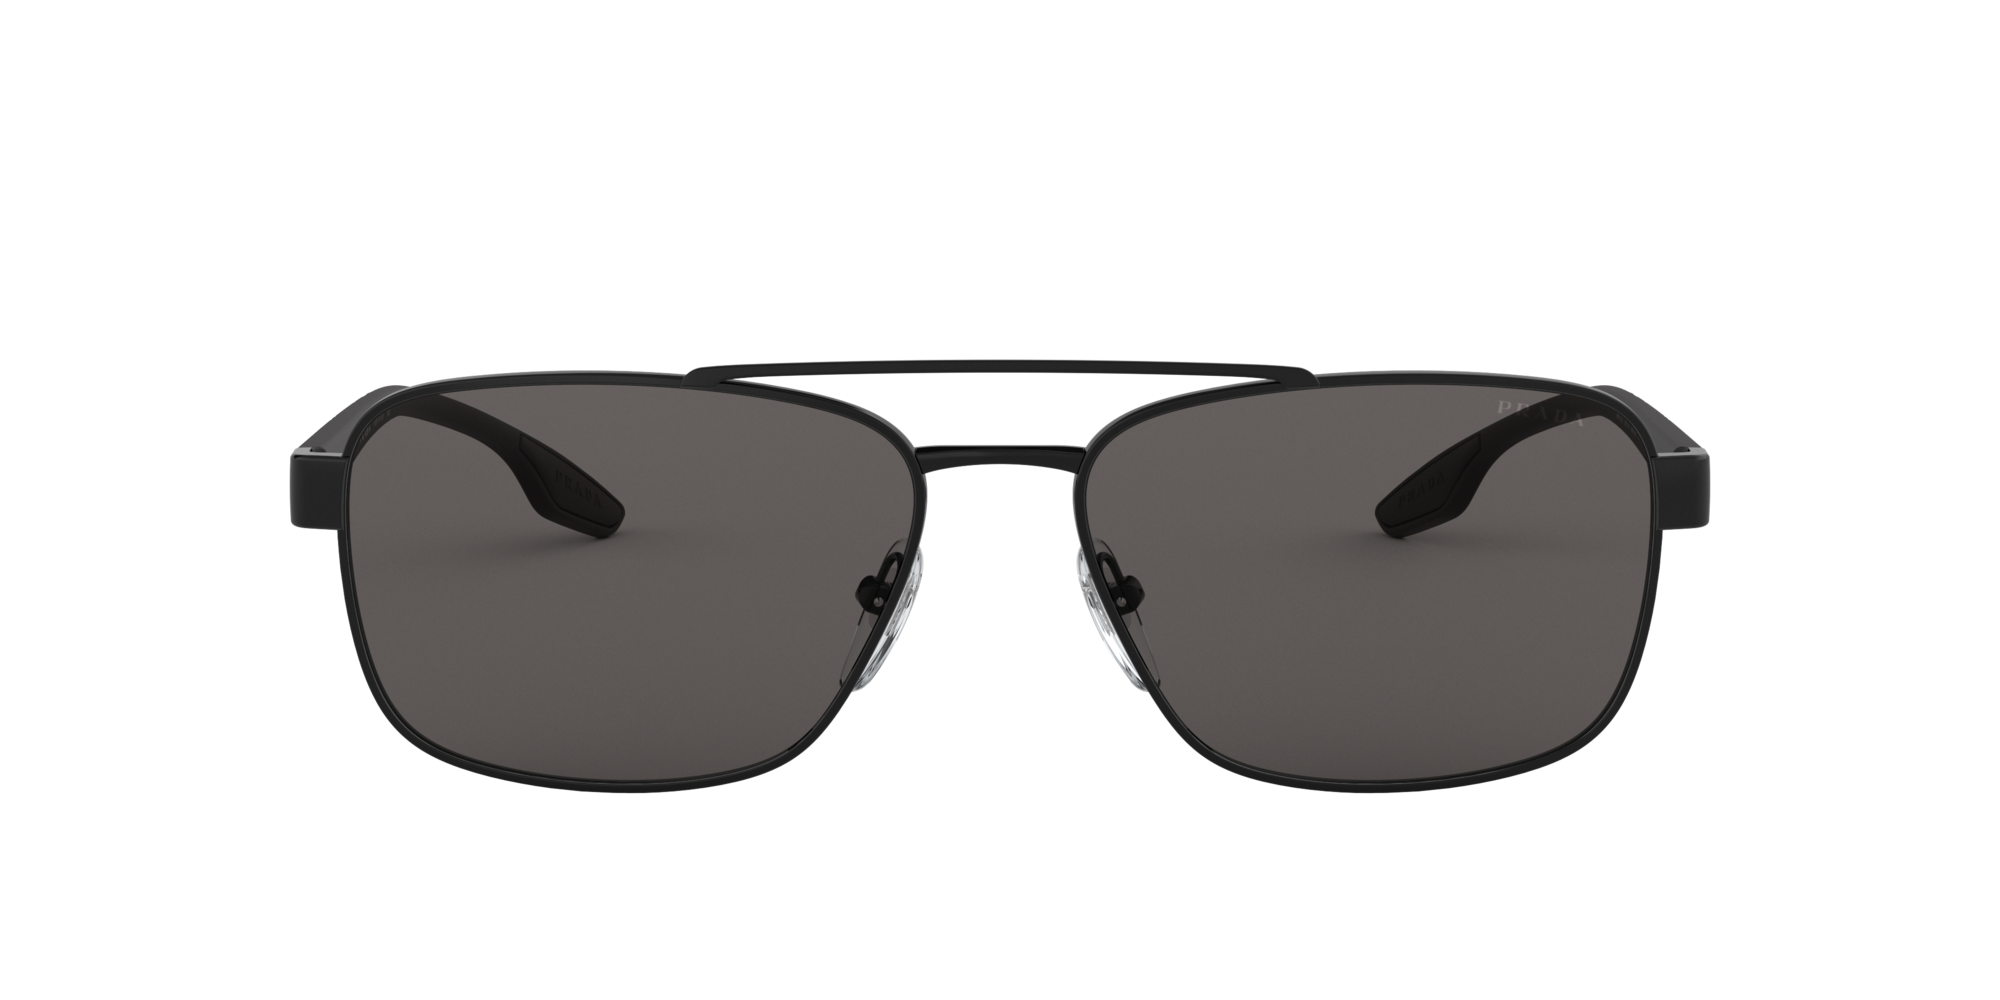 Image for PS 51US 62 LIFESTYLE from LensCrafters | Glasses, Prescription Glasses Online, Eyewear